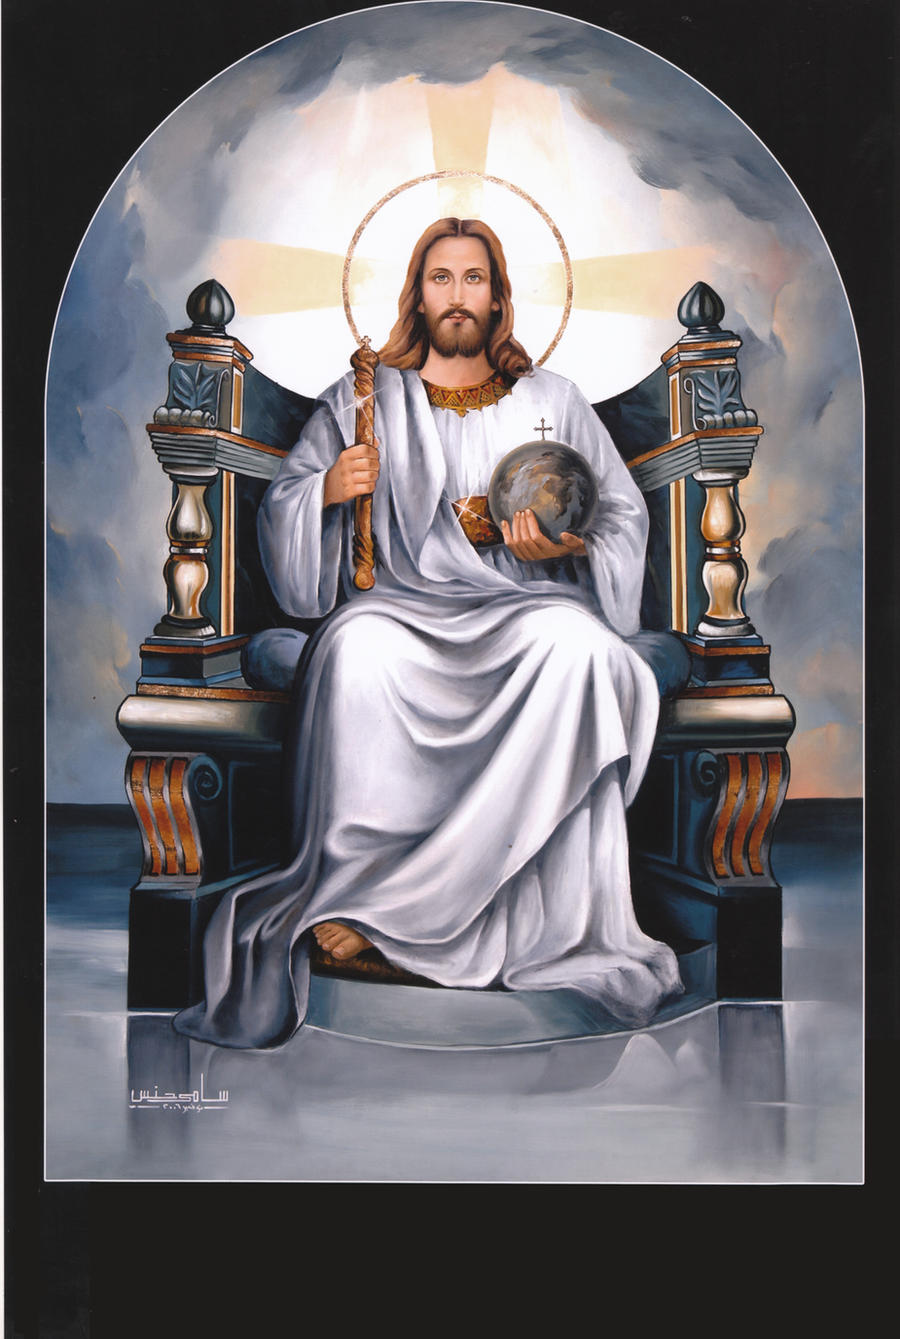 http://fc06.deviantart.net/fs70/i/2012/263/9/1/jesus_the_king2_by_joeatta78-d5fda2i.jpg